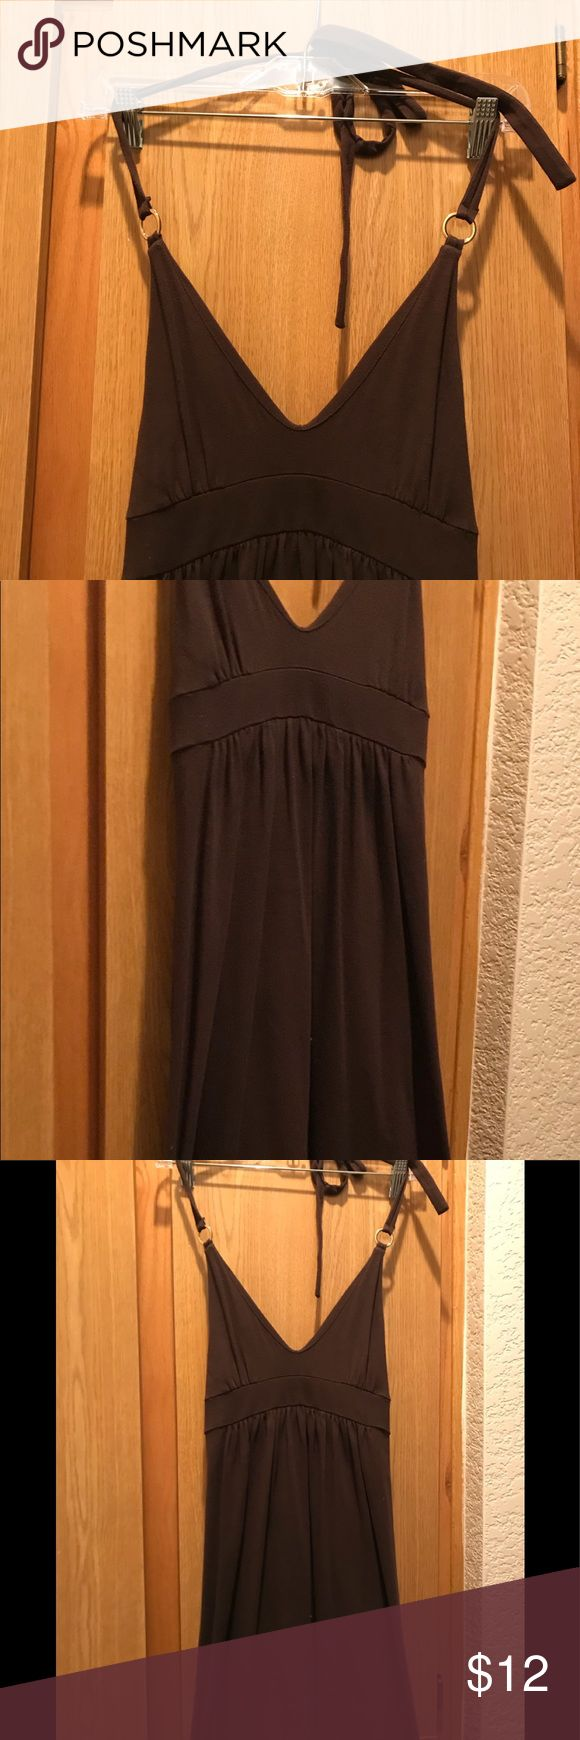 Long brown maxi dress. Long brown maxi dress, Size XS, can be worn as a cover-up or cute daytime dress. Never worn. Victoria secret. Moda International Dresses Maxi